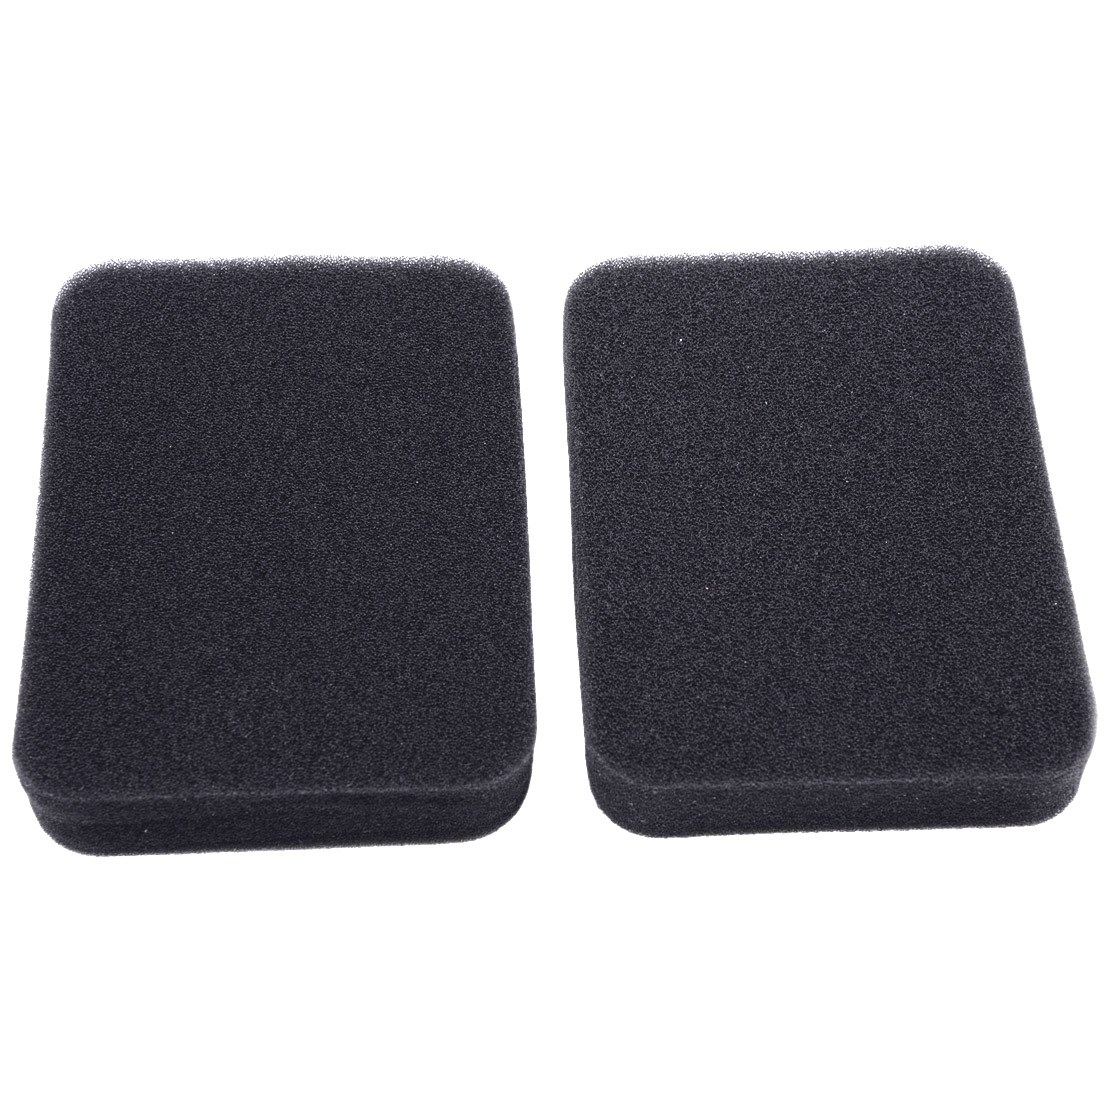 LETAOSK 2pcs Foam Air Filter Fit For Honda GX240 GX270 GX340 GX390 17211-899-000 Replacement Power Tools Accessories